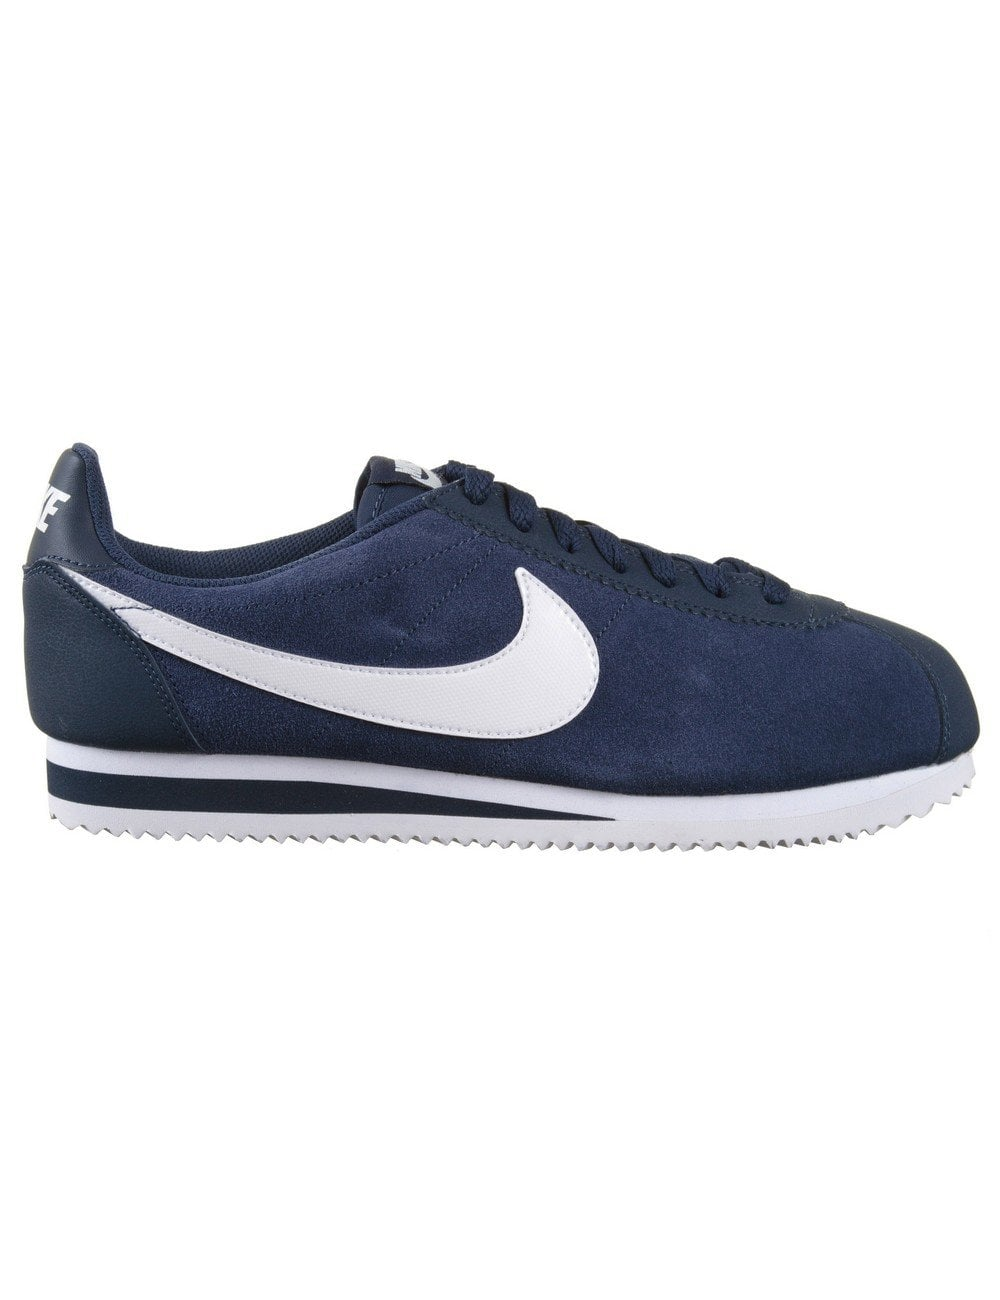 quality design cf8be 077d3 Cortez Leather Shoes - Midnight Navy/White